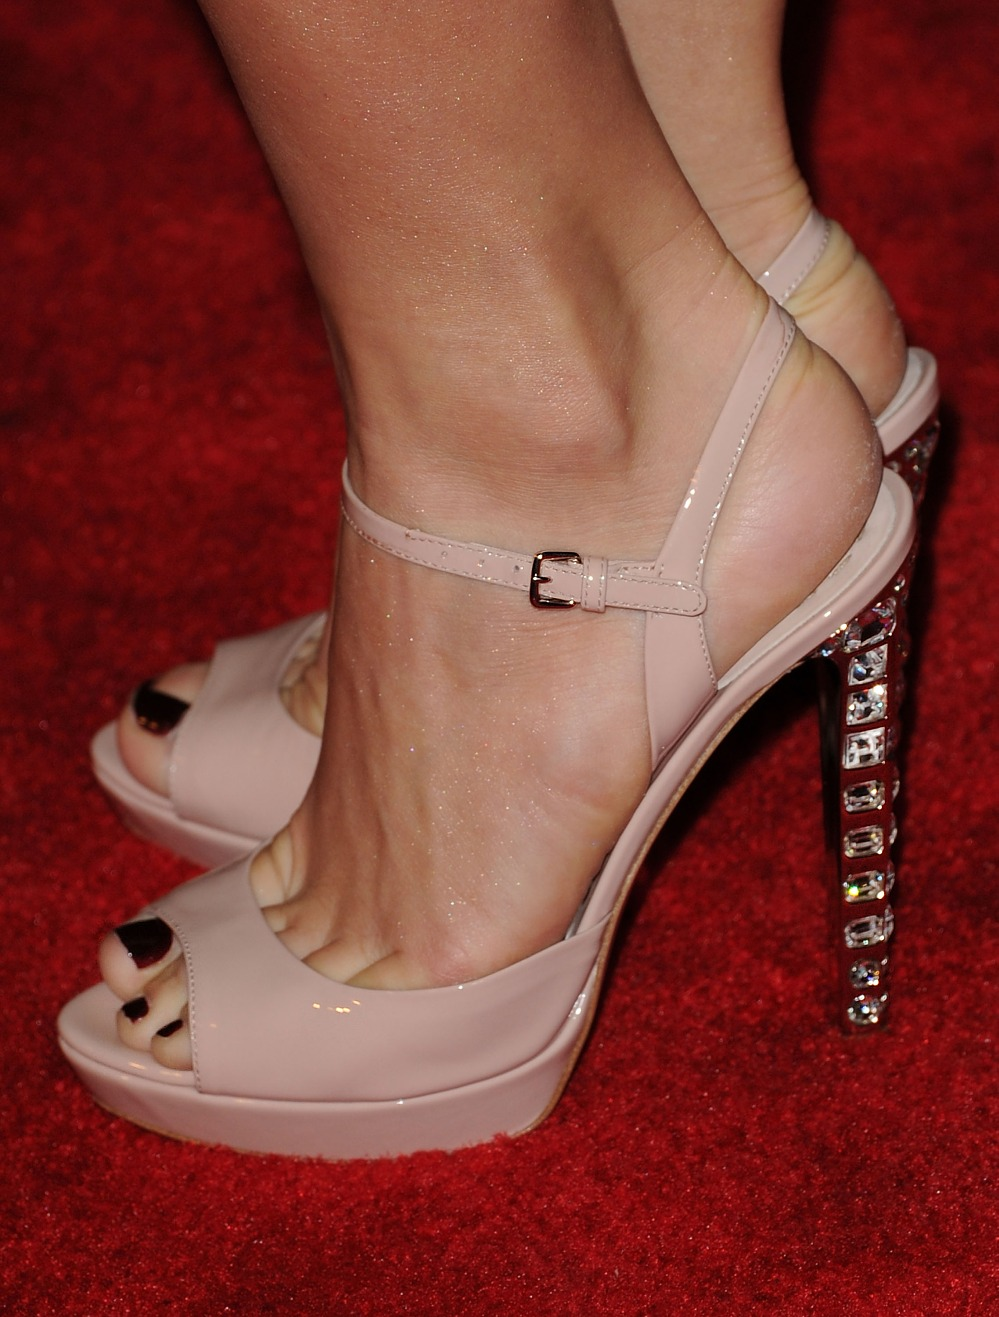 Julianne Hough Feet Education Apps